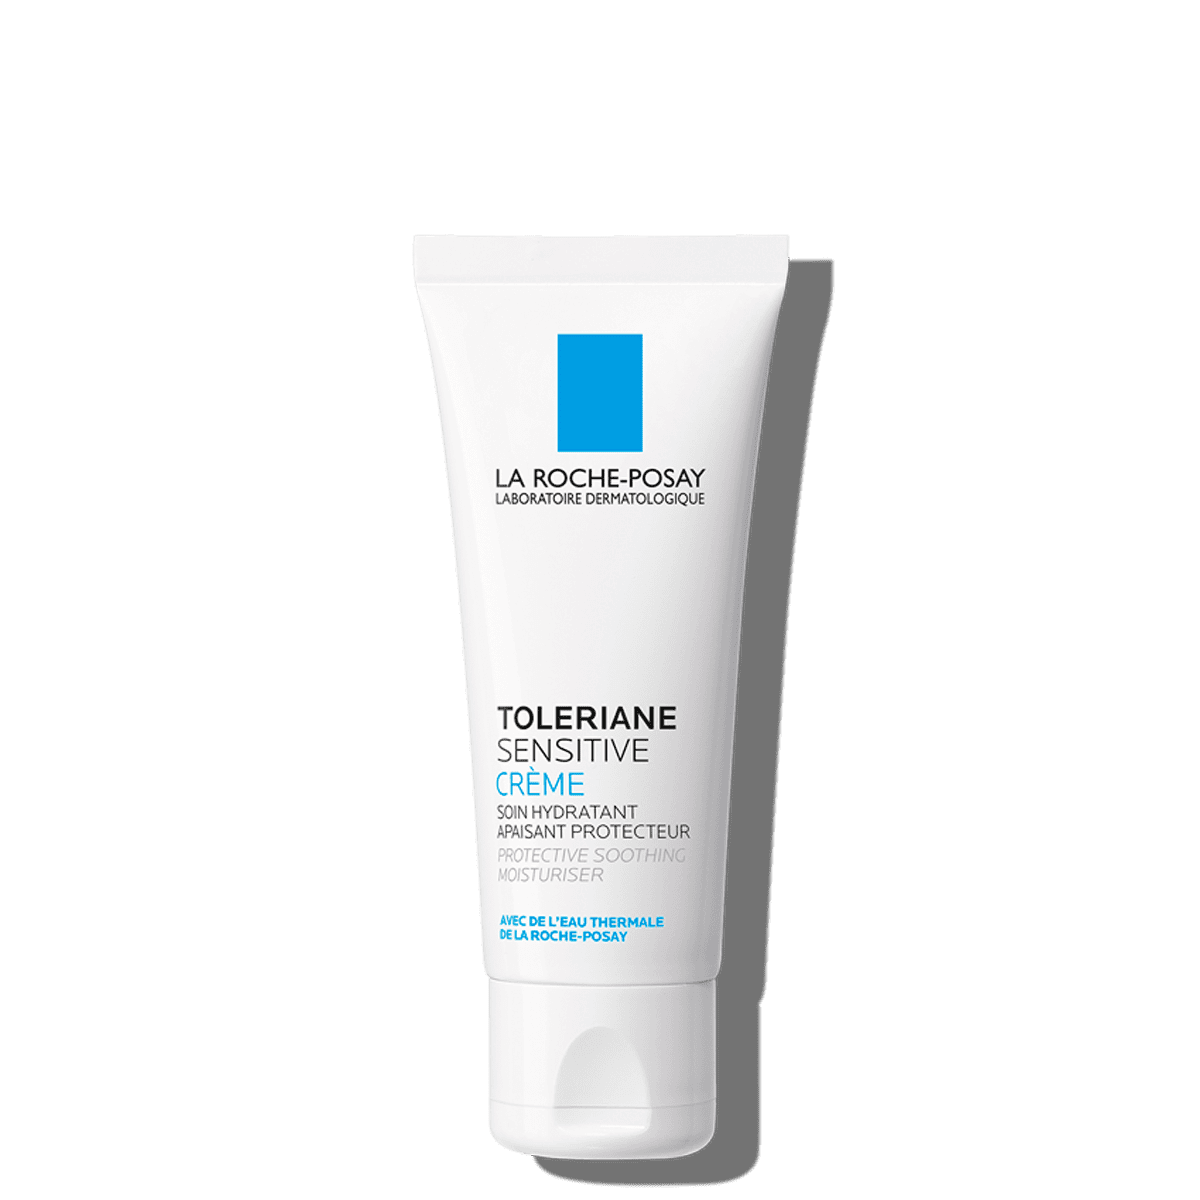 La Roche Posay ProductPage Sensitive Allergic Toleriane Sensitive Preb